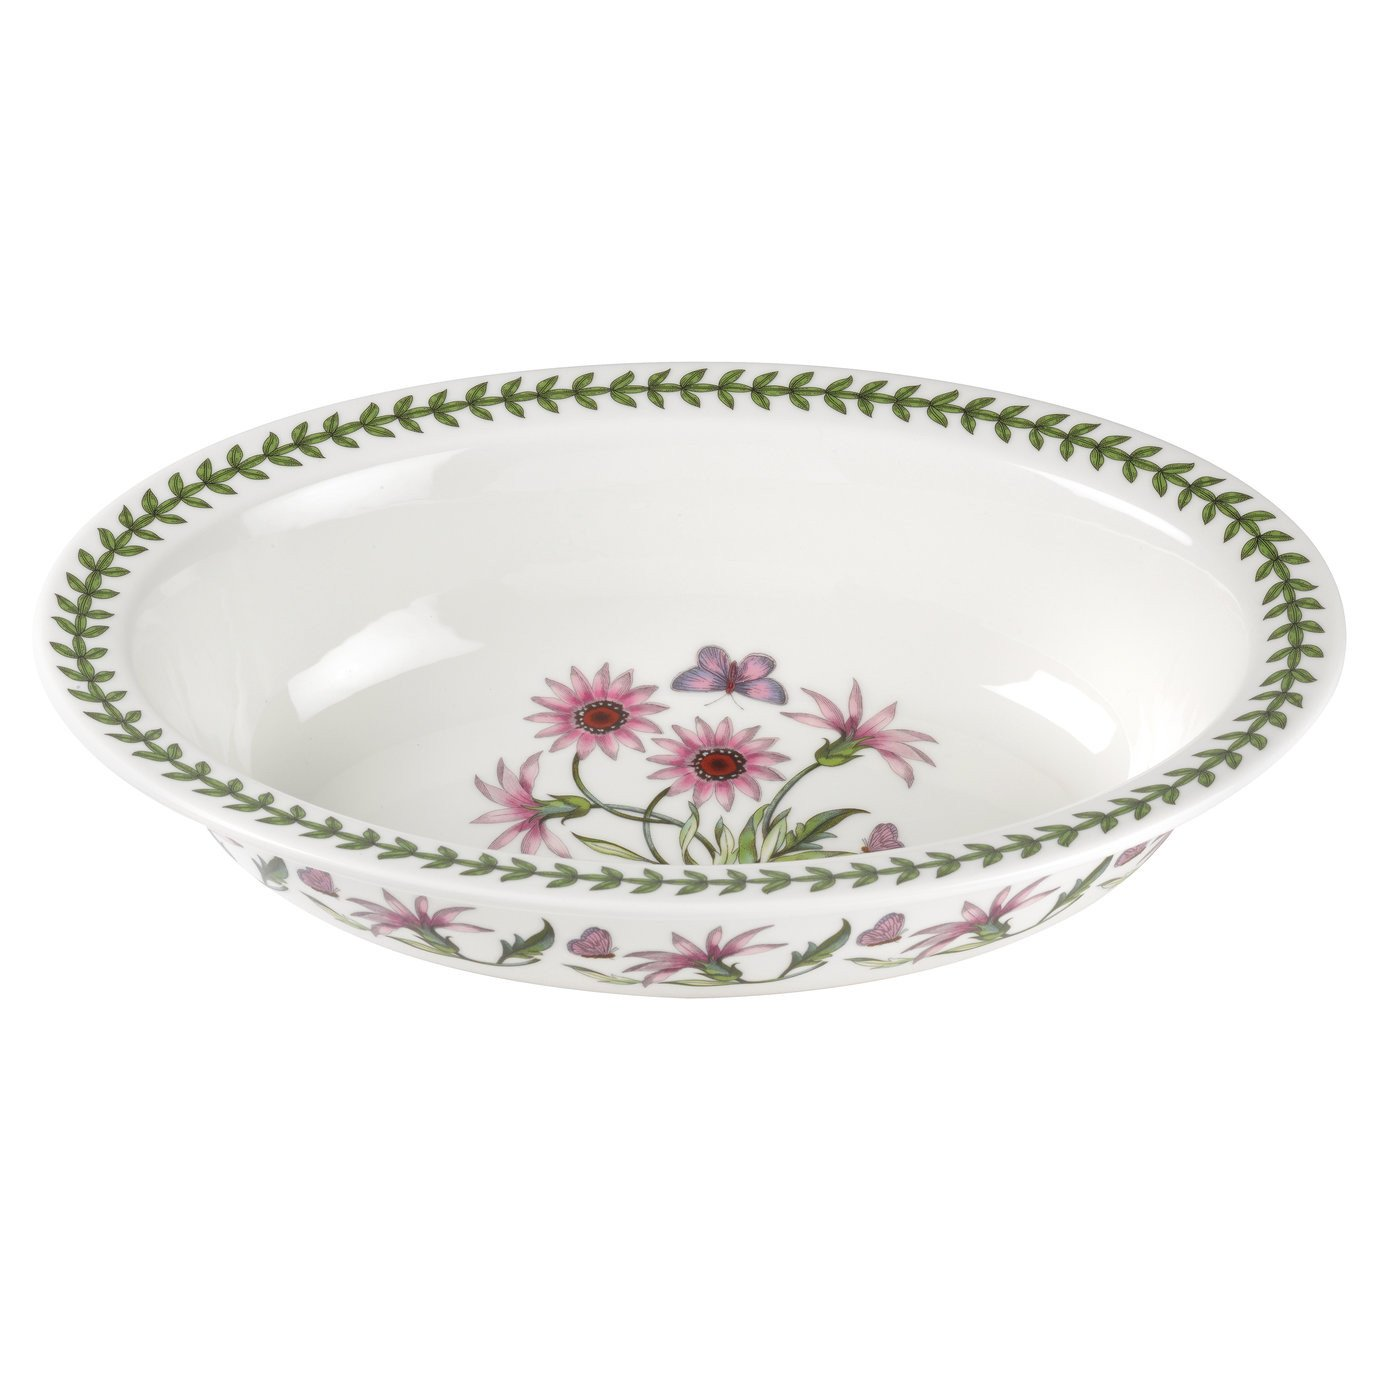 Portmeirion Botanic Garden Treasure Flower Oval Pie Dish